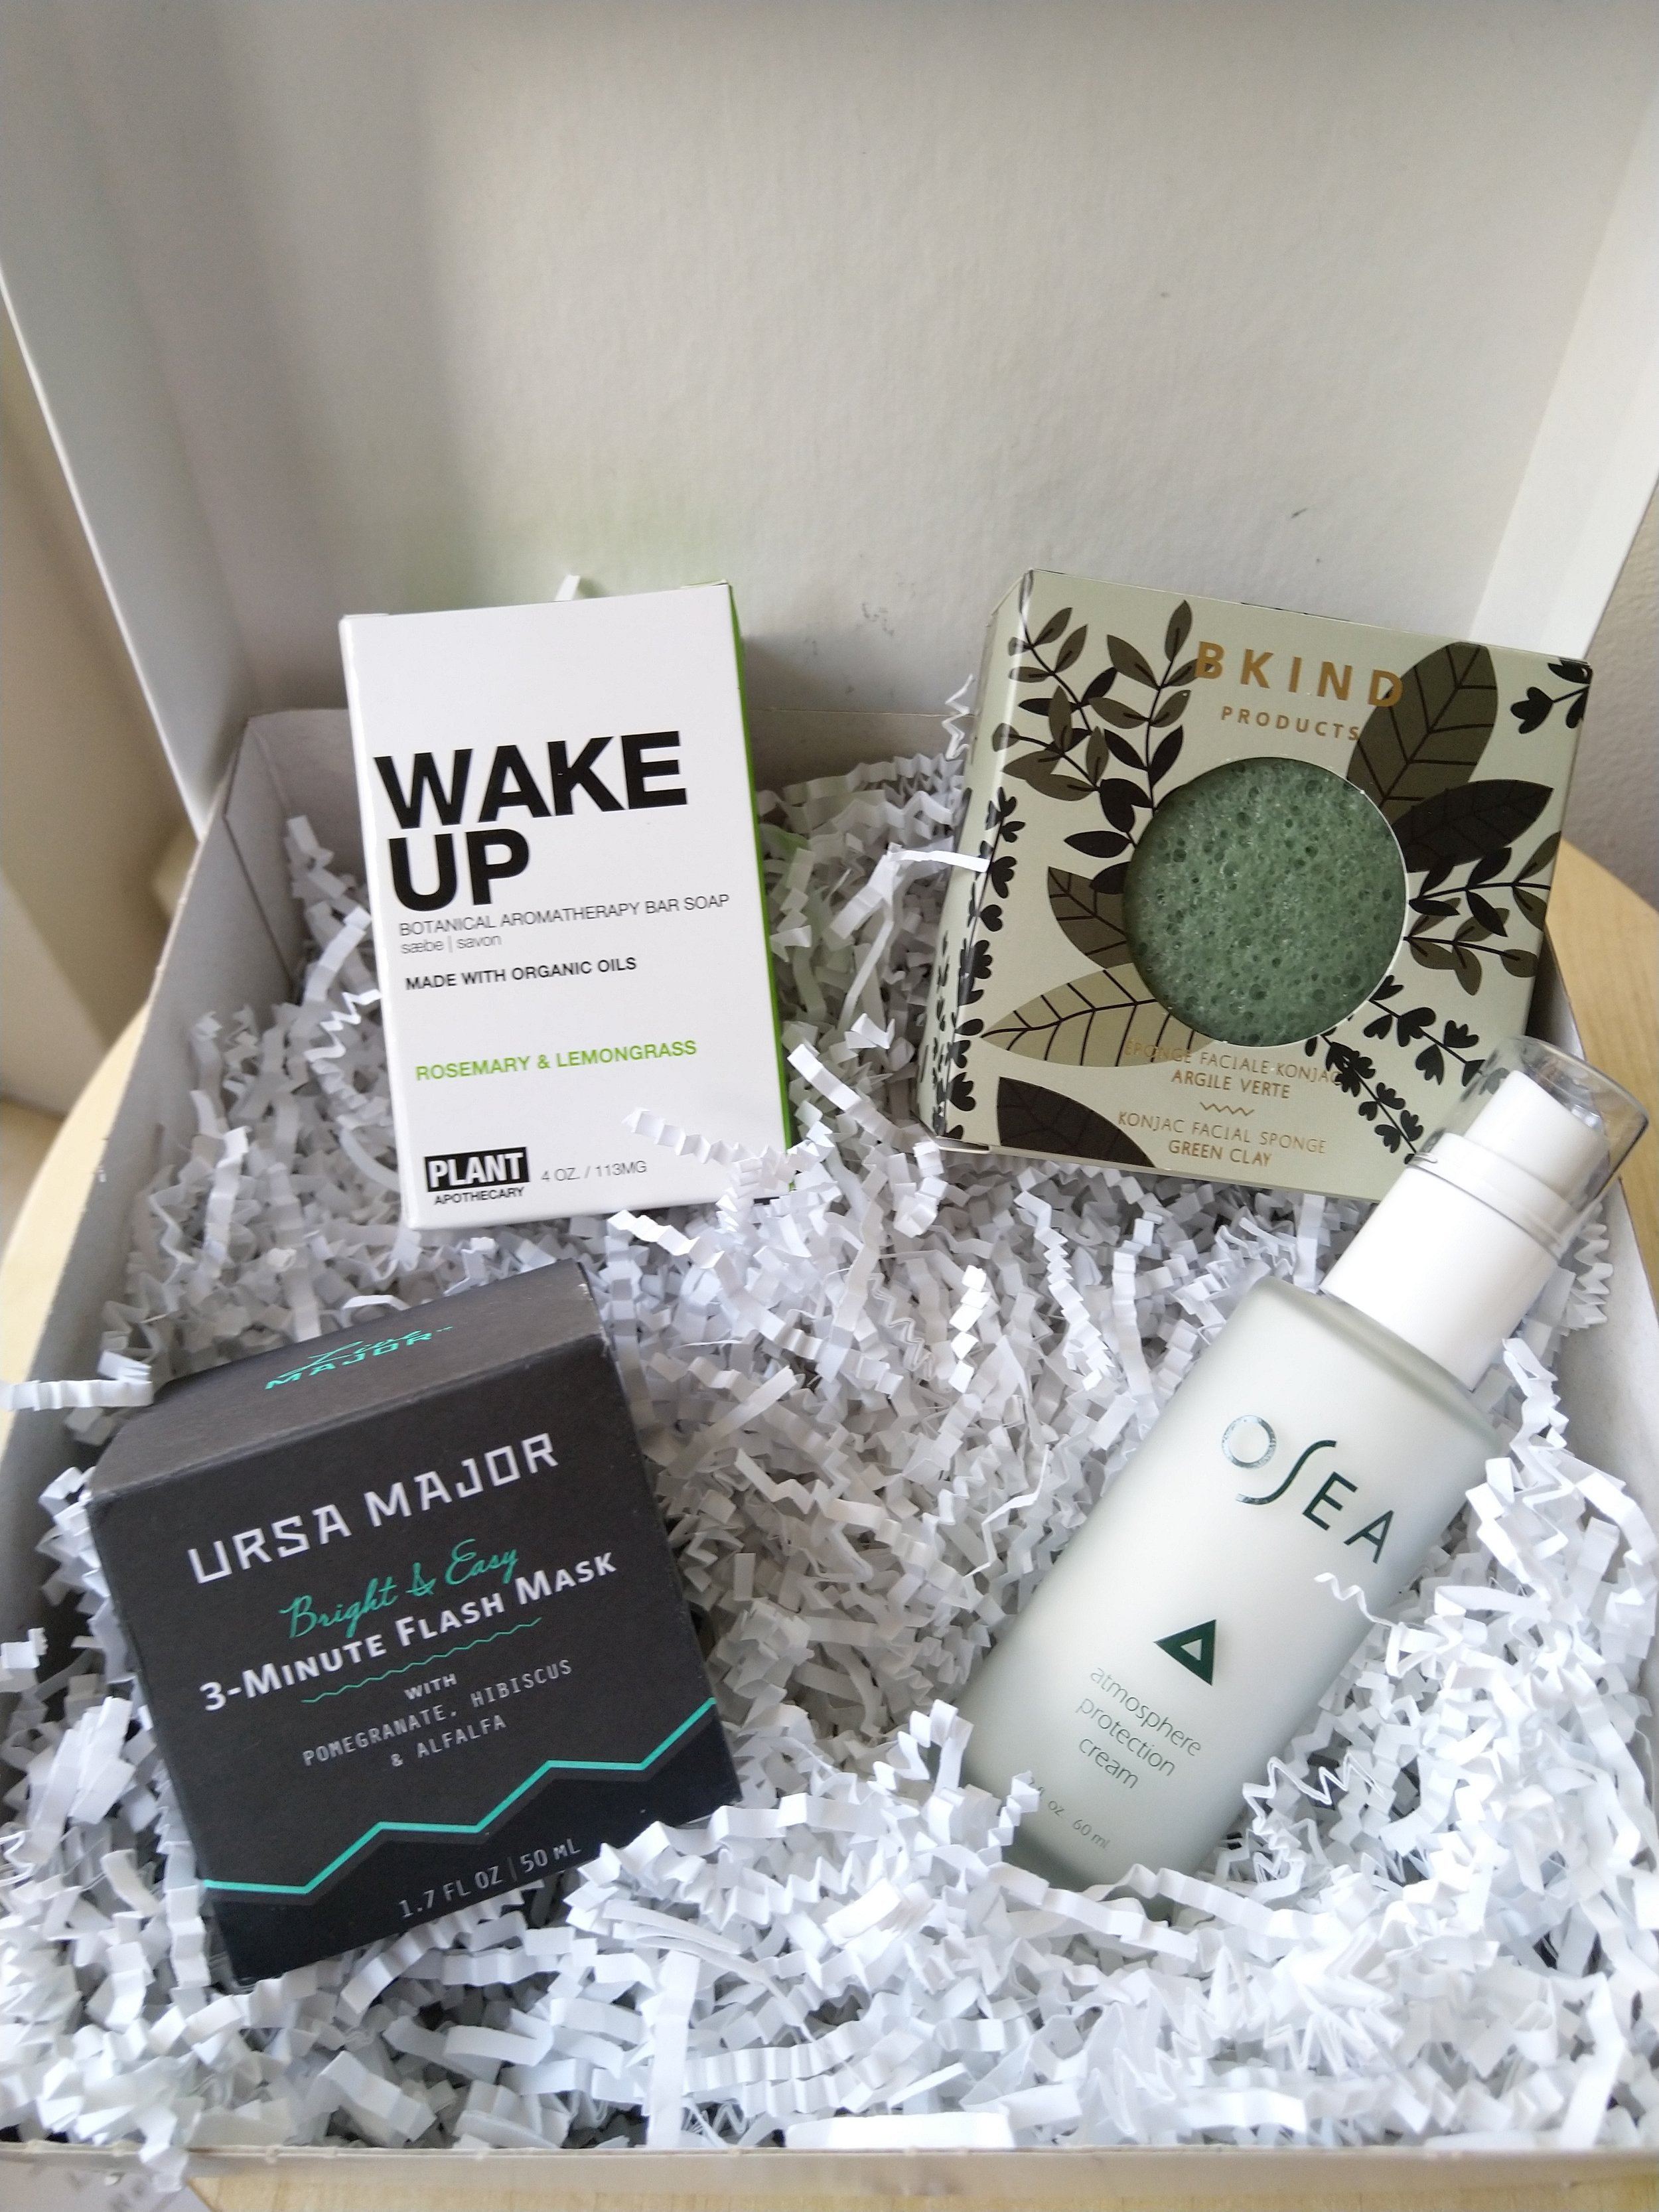 Image: Laurel & Reed Beauty Box / Author's own